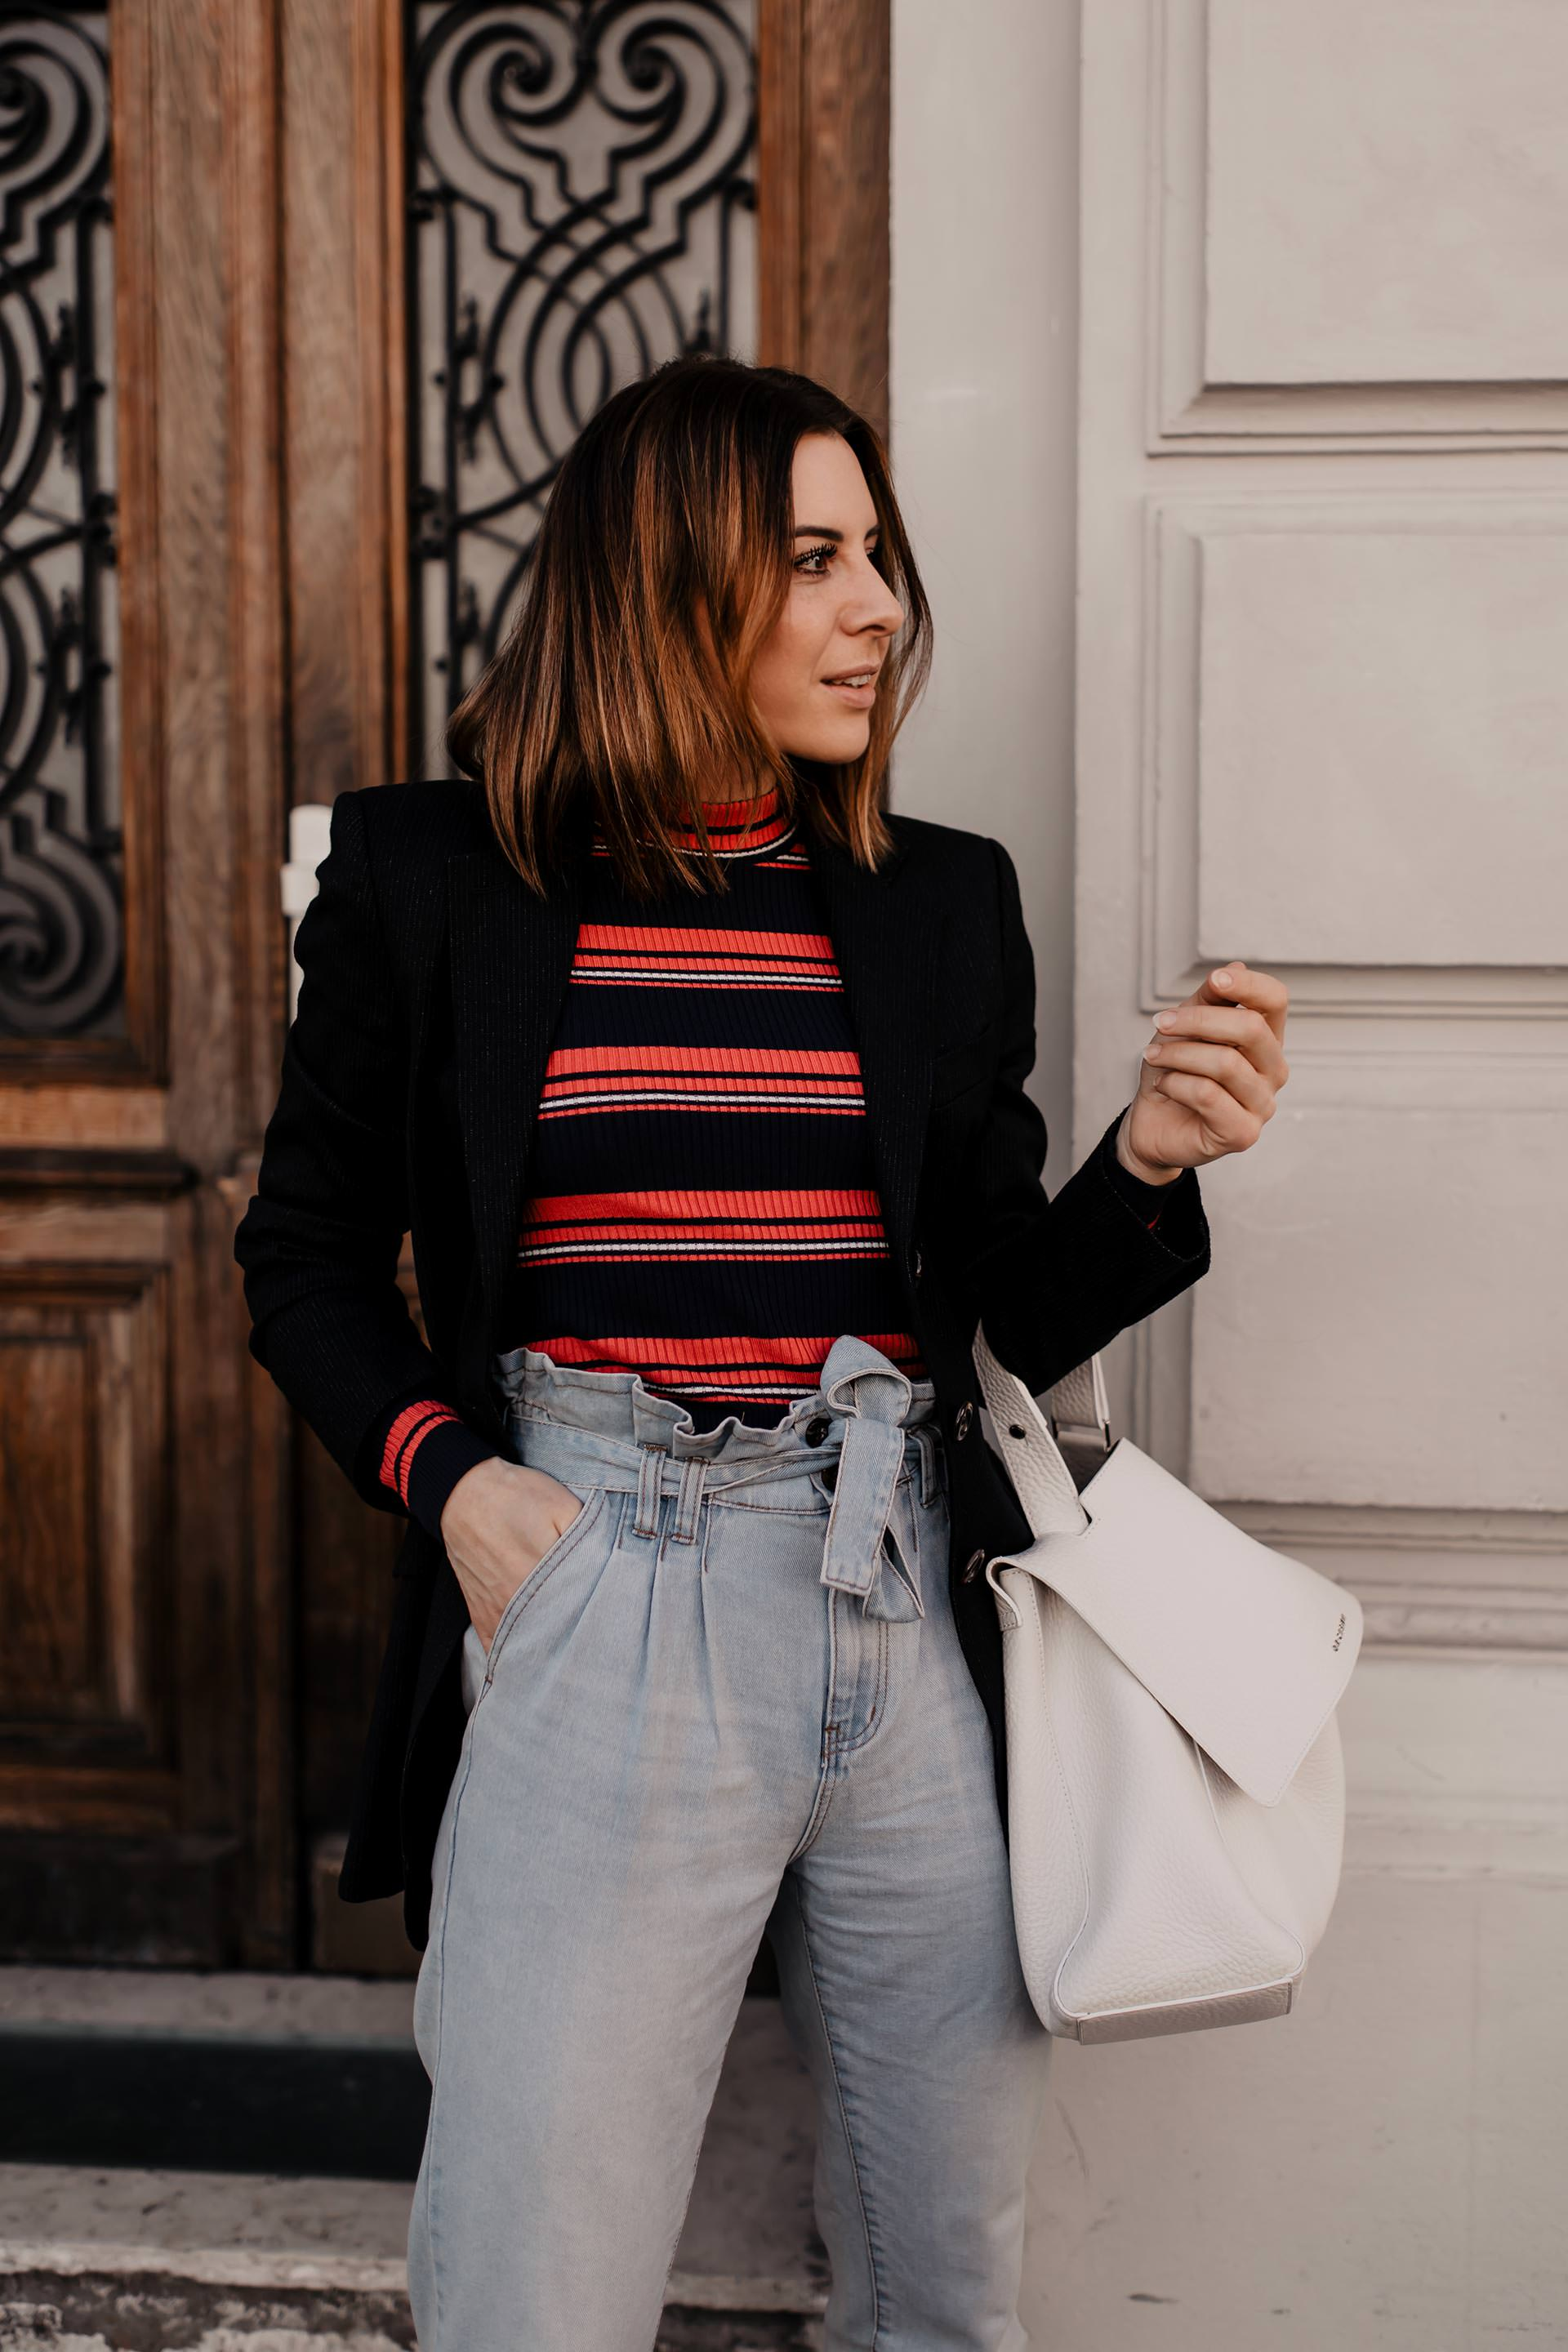 Werbung // Paperbag Hose stylen, eBay Fashion, Statement Stripes, Bold Stripes, Modetrends 2019, Frühlingsoutfit, Paperbag jeans, gestreifter pullover, bold stripes trend, streifen kombinieren, gestreiften pullover kombinieren, Mode Tipps, www.whoismocca.com #boldstripes #modetrends #frühlingstrends #statementstripes #eBayFashion